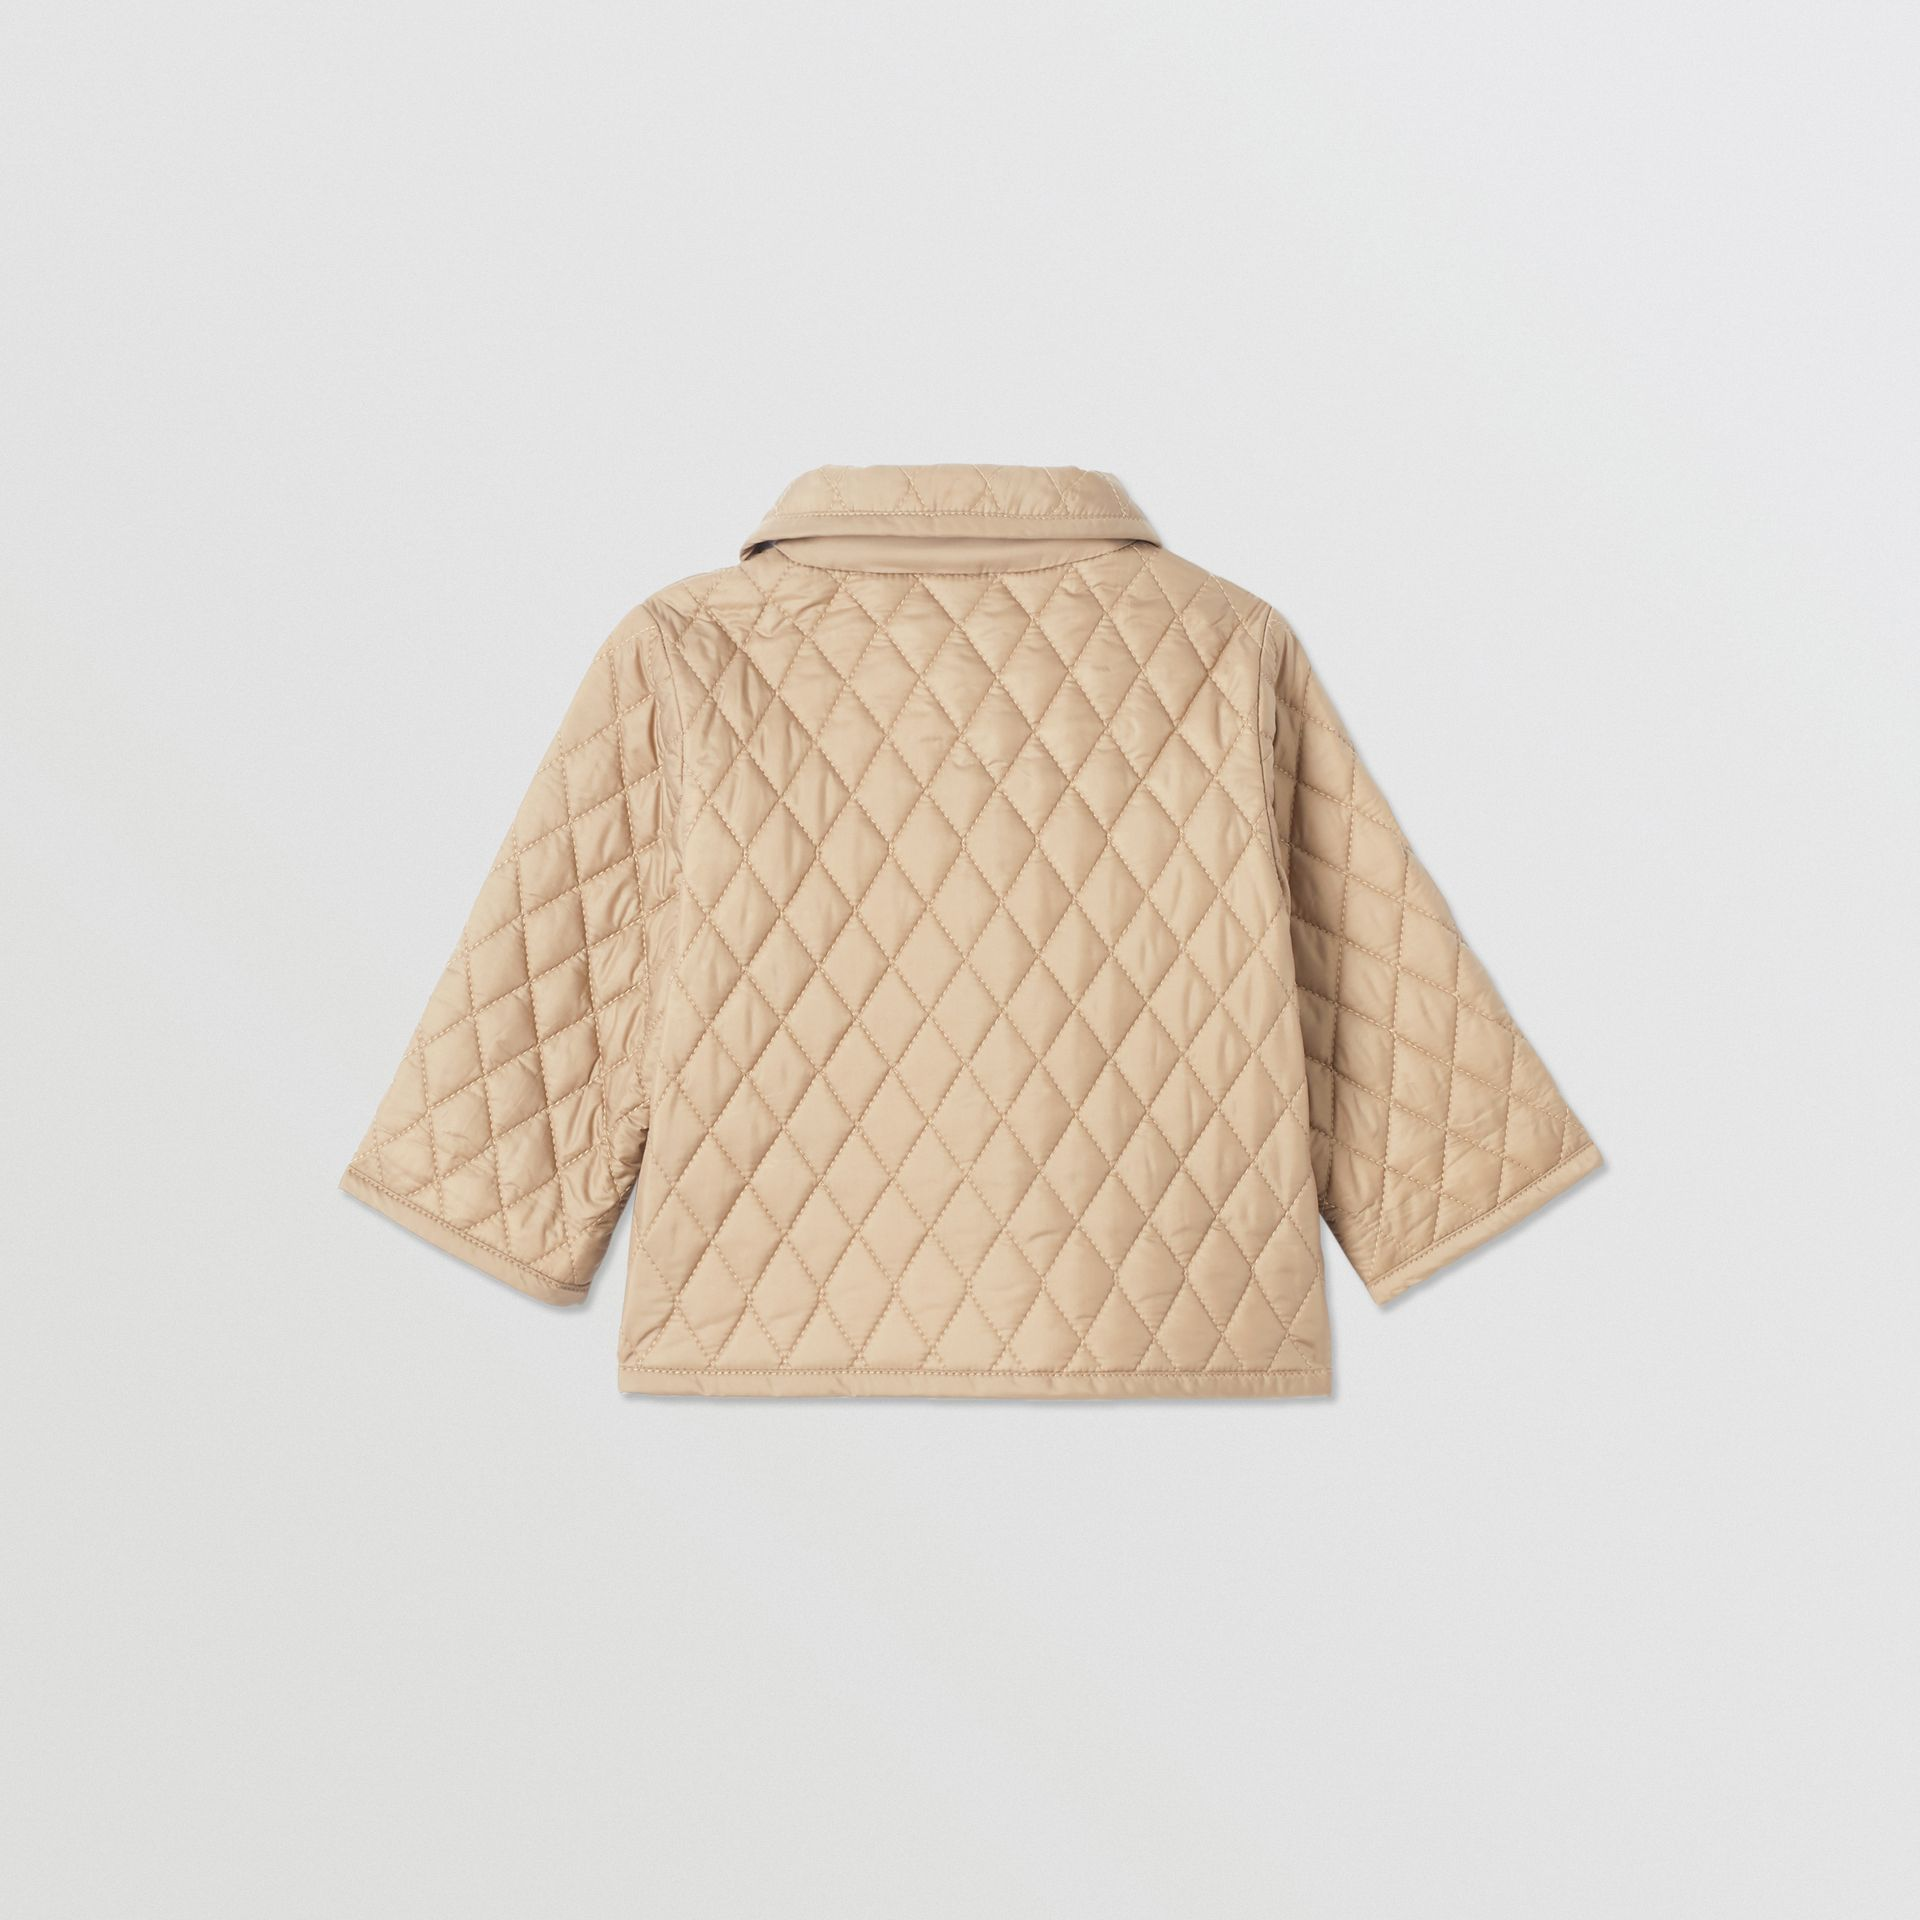 Showerproof Diamond Quilted Jacket in Walnut - Children | Burberry Hong Kong S.A.R - gallery image 4